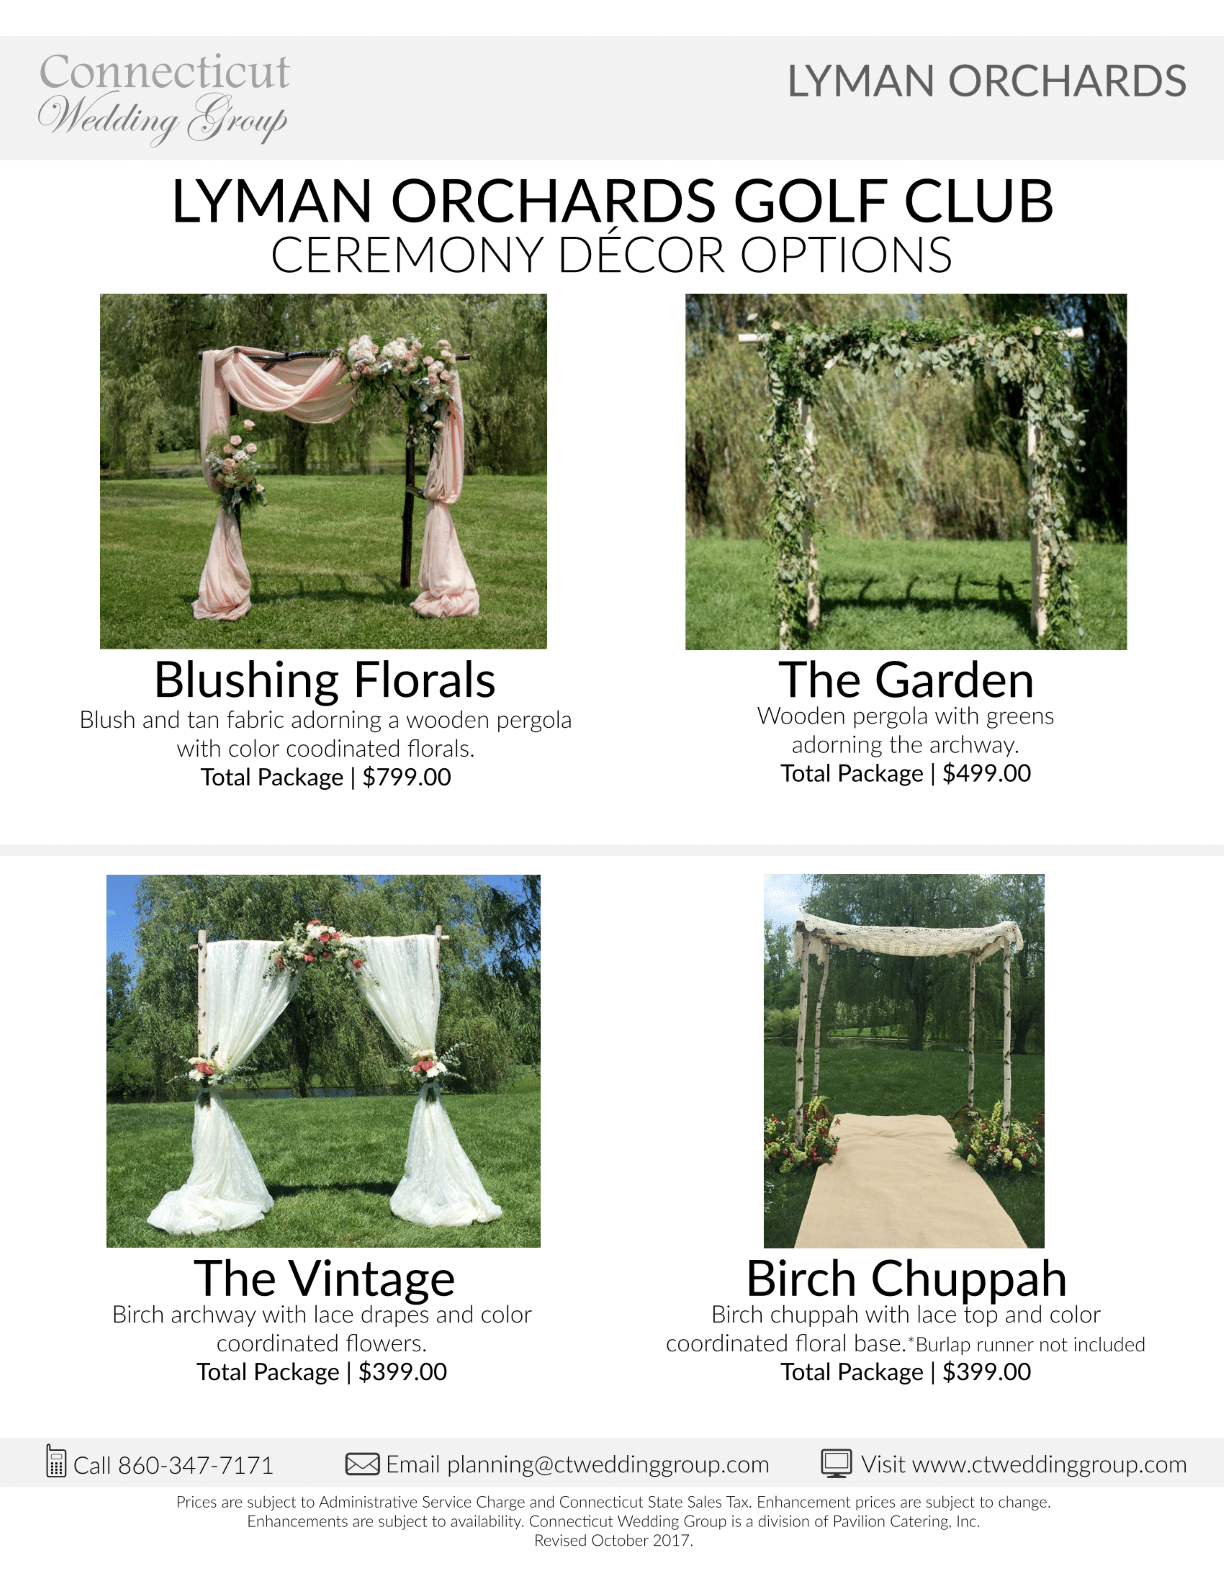 Lyman-Orchards-Golf-Club-Ceremony-Decor-Packages_2018-1